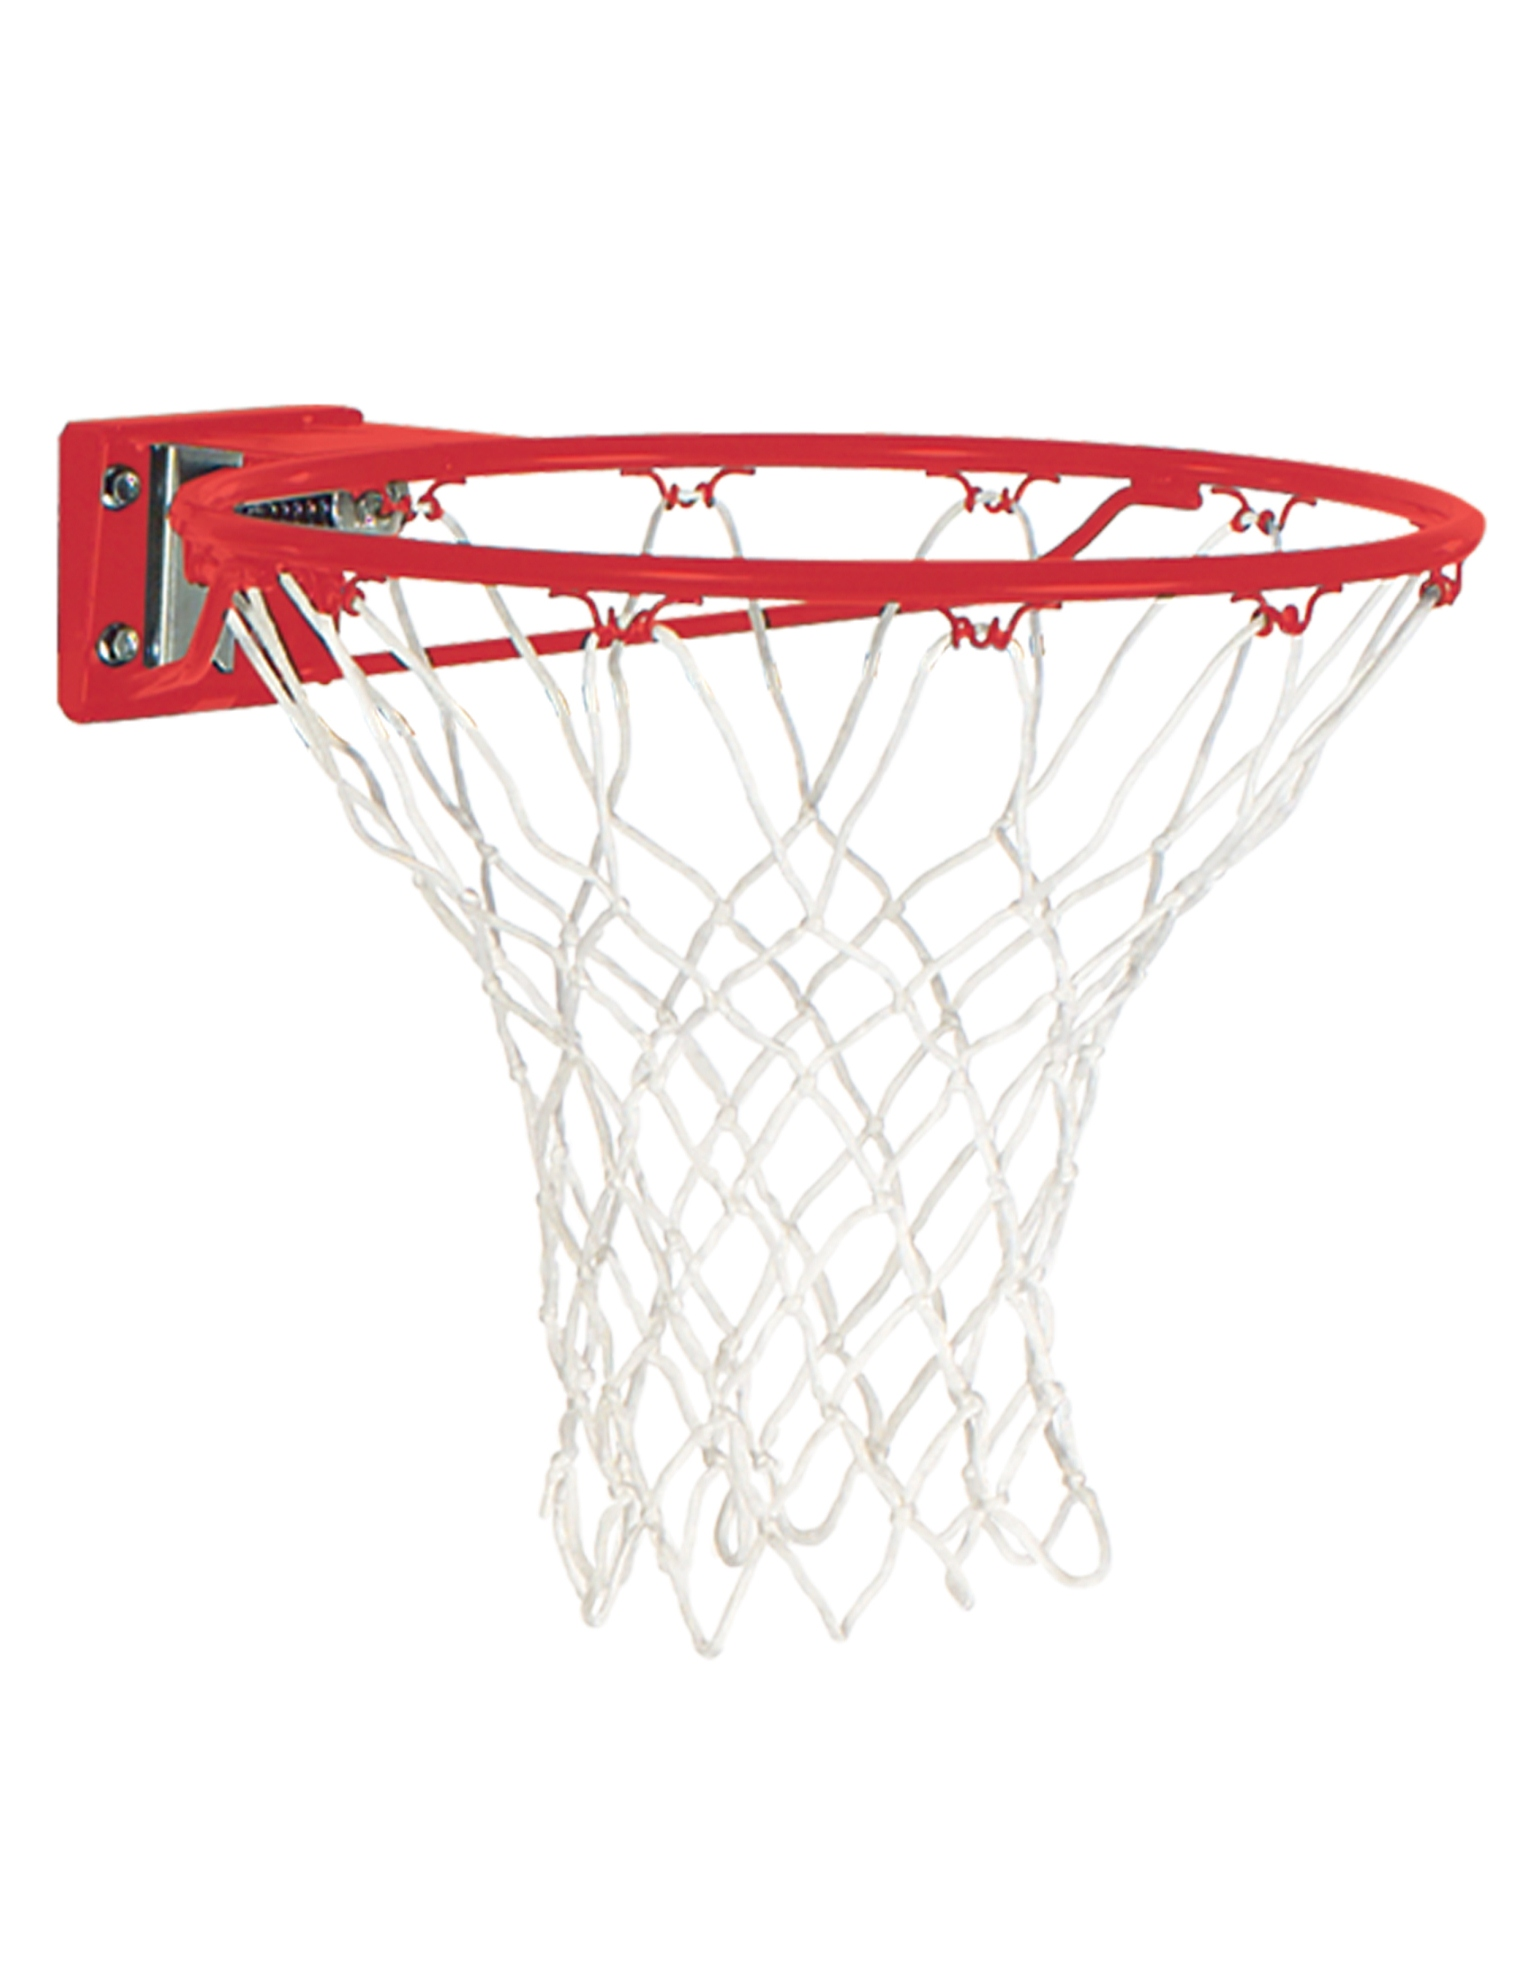 Huffy Spalding Basketball Accessory 7800SP Slam Jam Red Replacement Rim